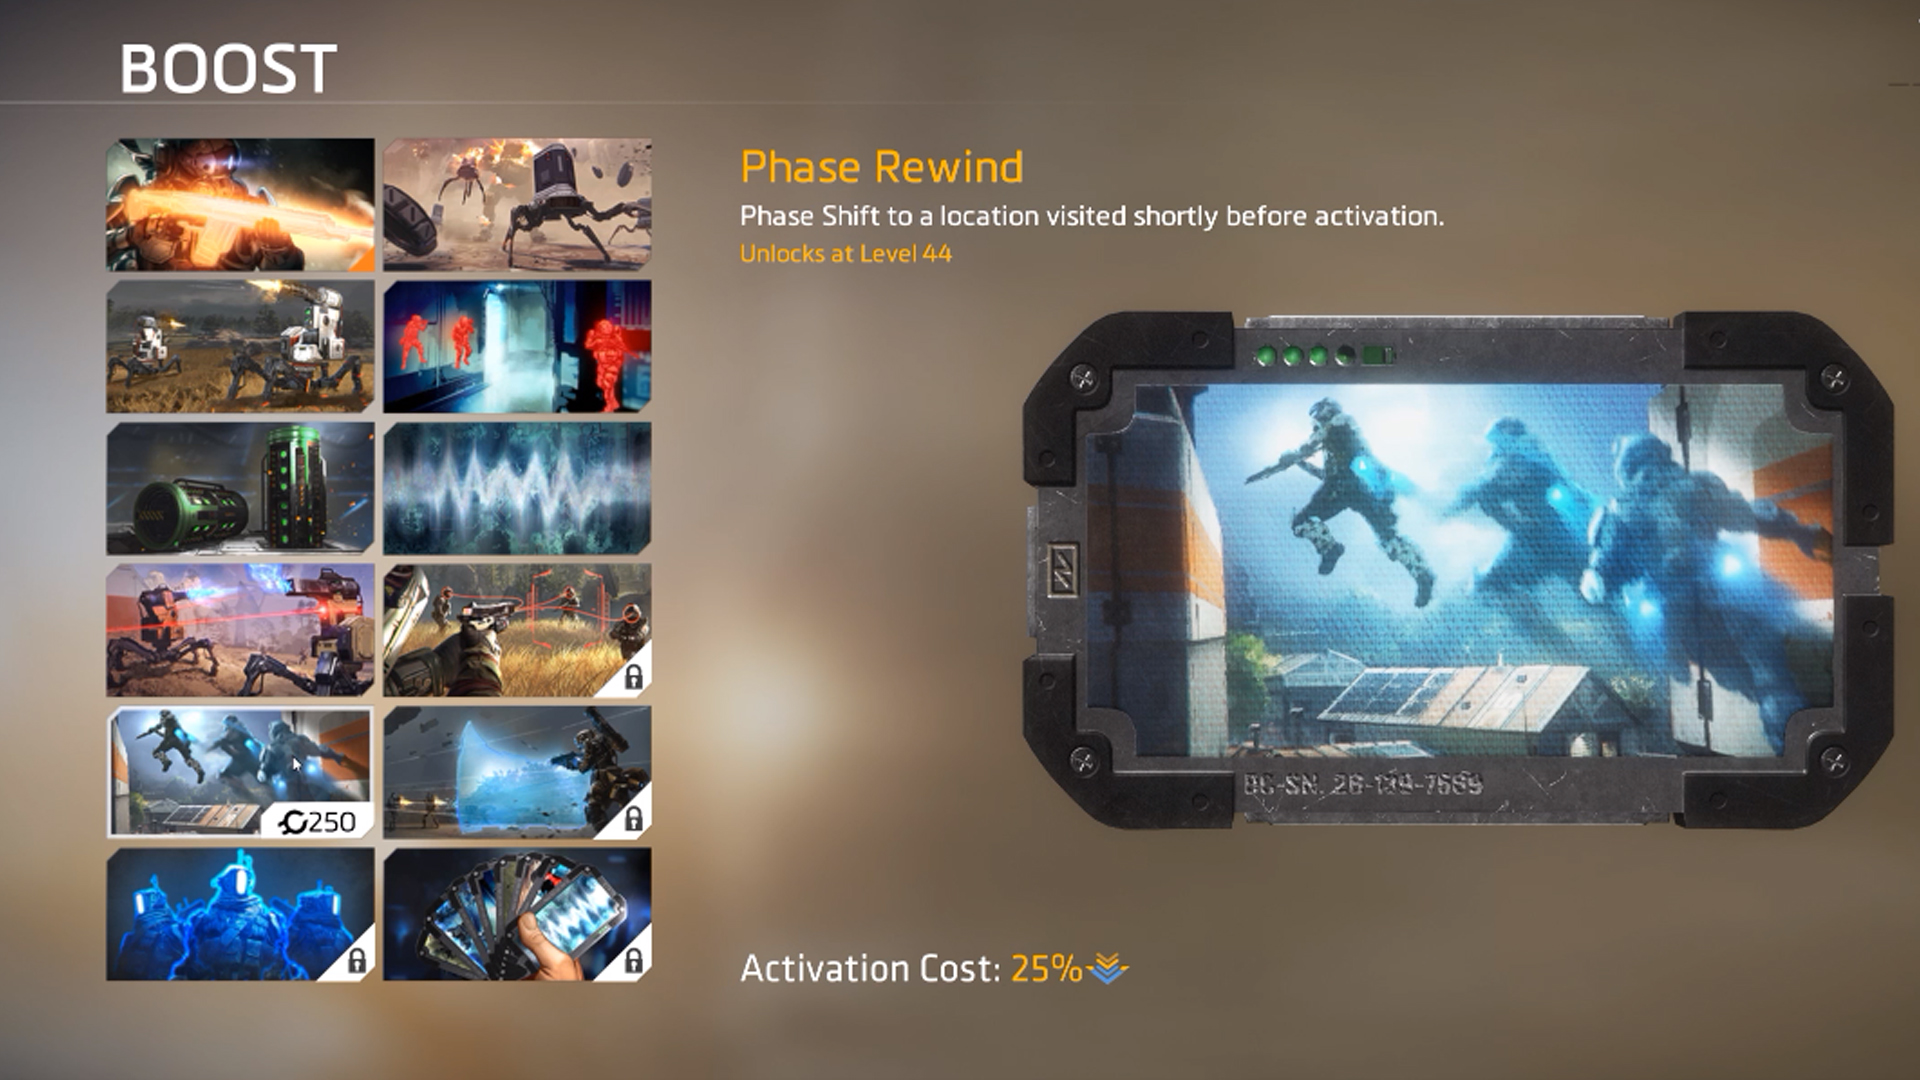 There are several different Boosts available in Titanfall 2, each with their own game-changing effects